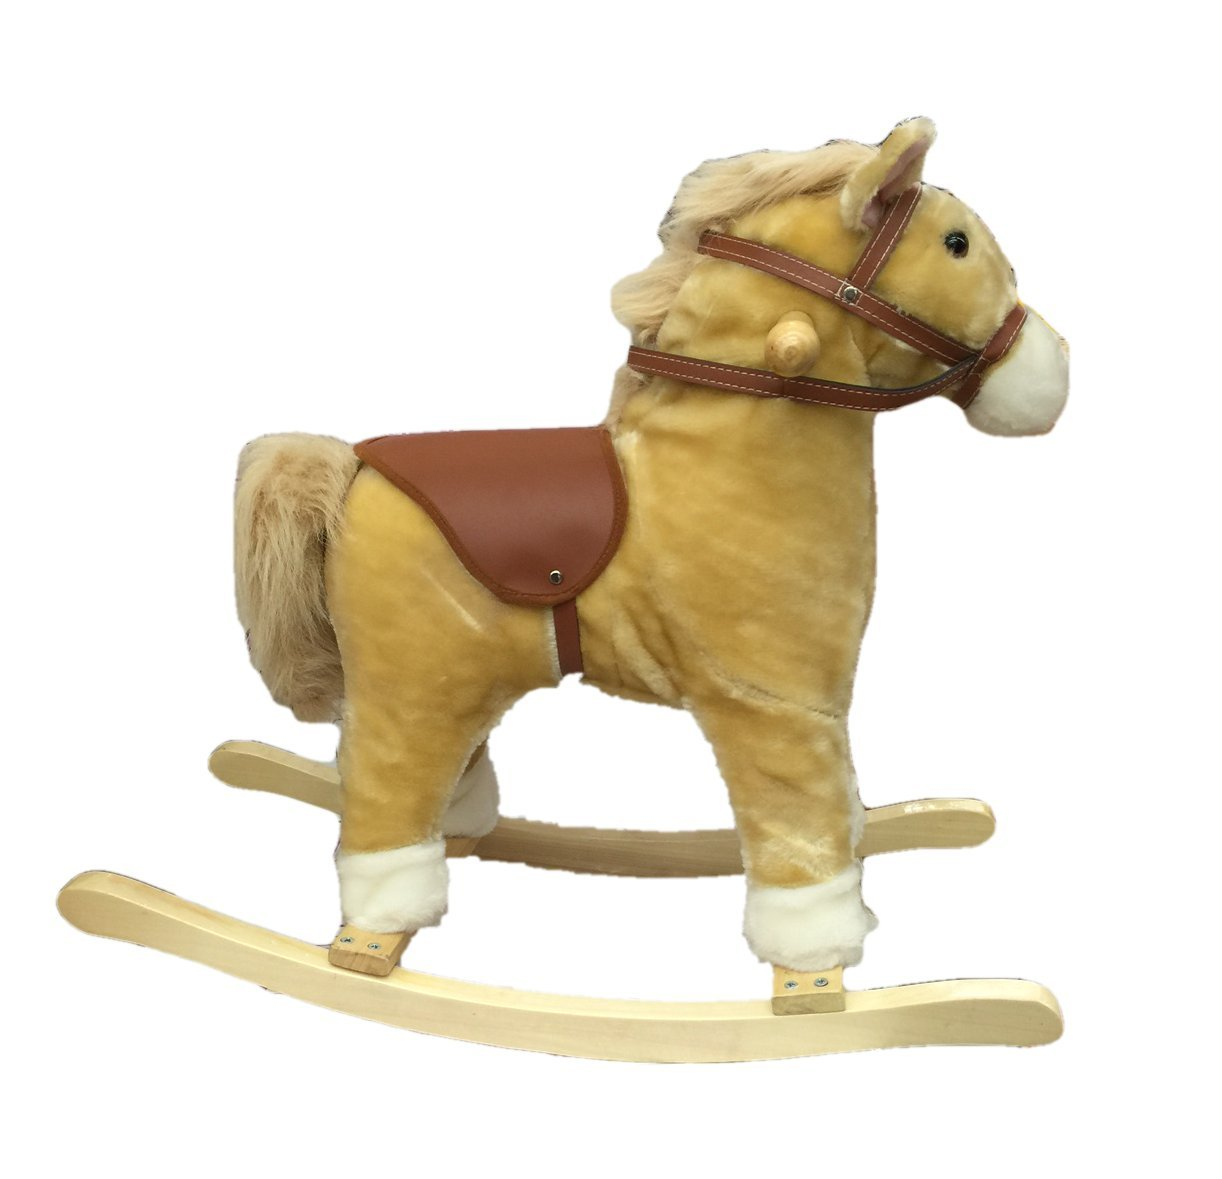 Manley Real Noise Blonde Plush 20-in. Rocking Horse with Saddle